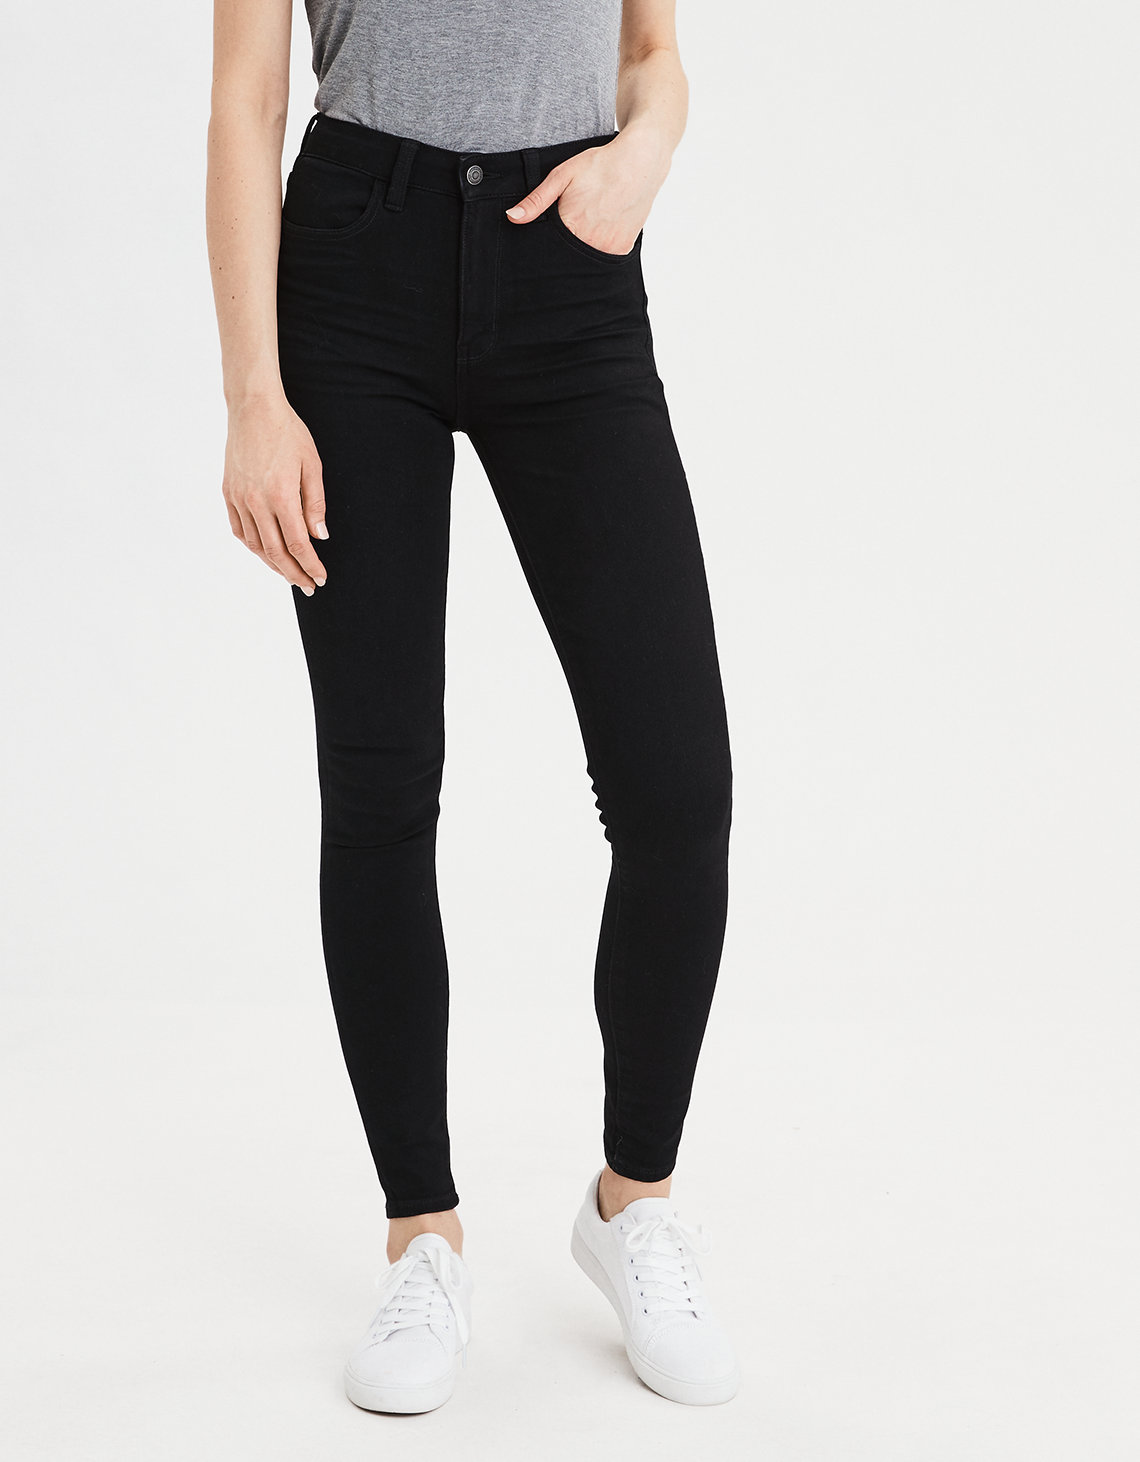 978facc764 AE 360 Ne(X)t Level Super High-Waisted Jegging